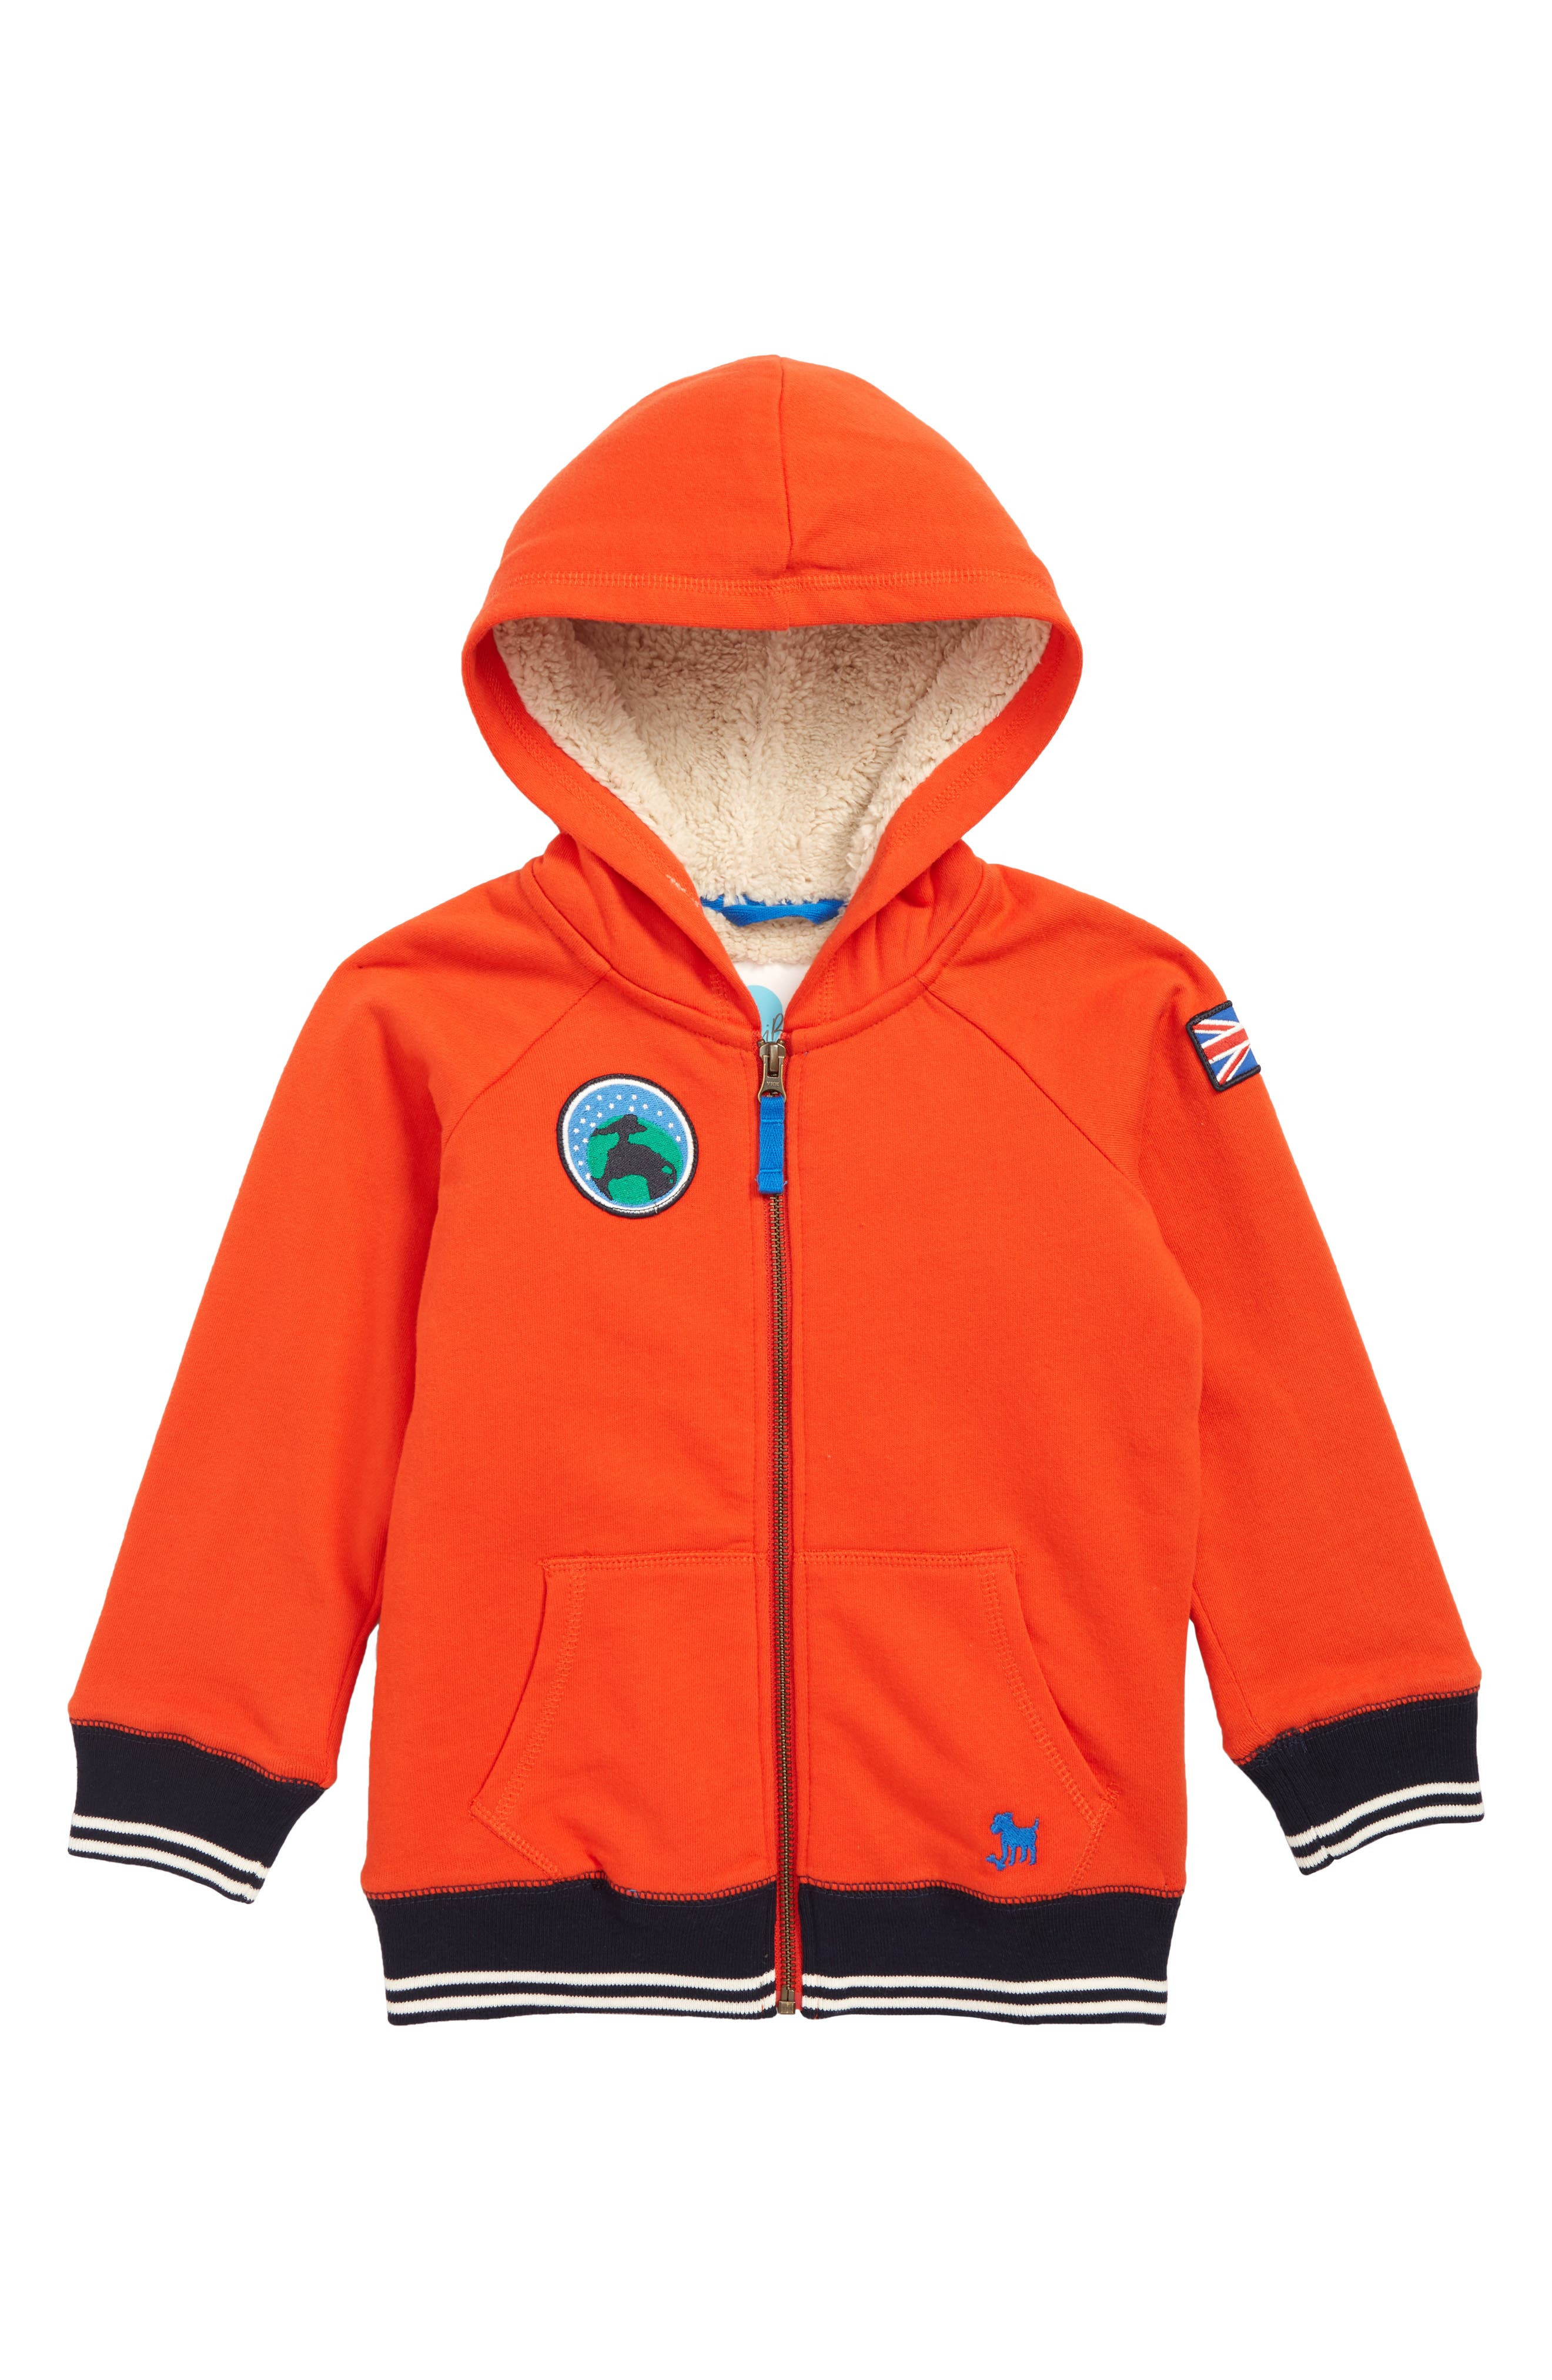 Boys Mini Boden Shaggy Colorblock Zip Hoodie Size 67Y  Red